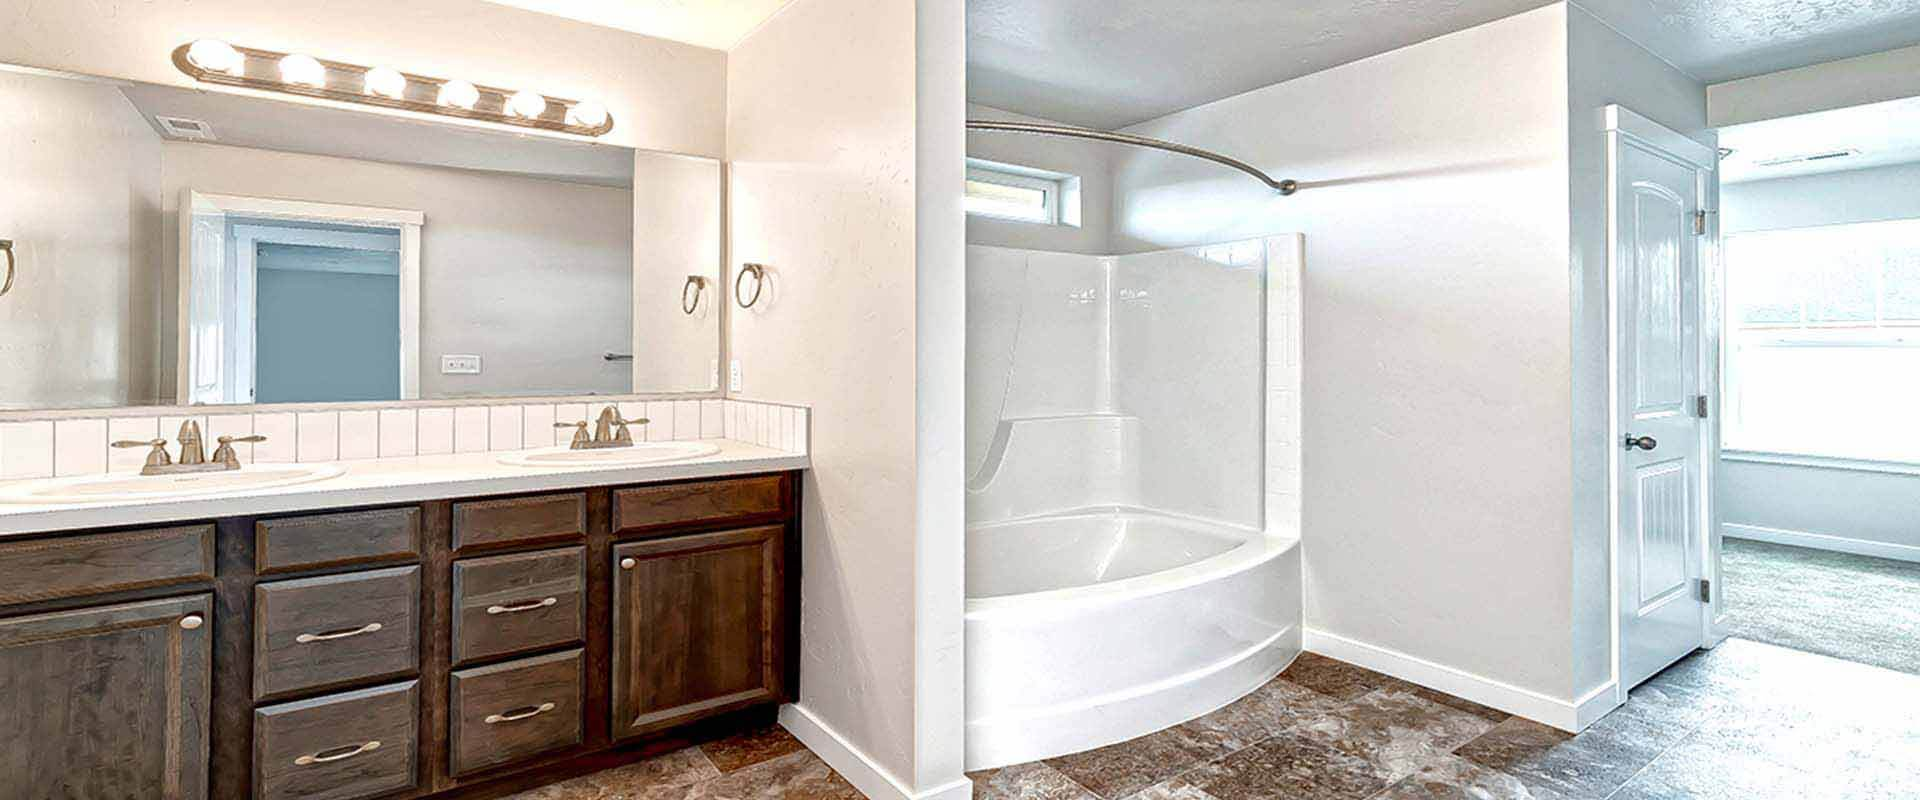 Ponderosa-new-homes-boise-idaho-hubble-homes-master-bath1.jpg